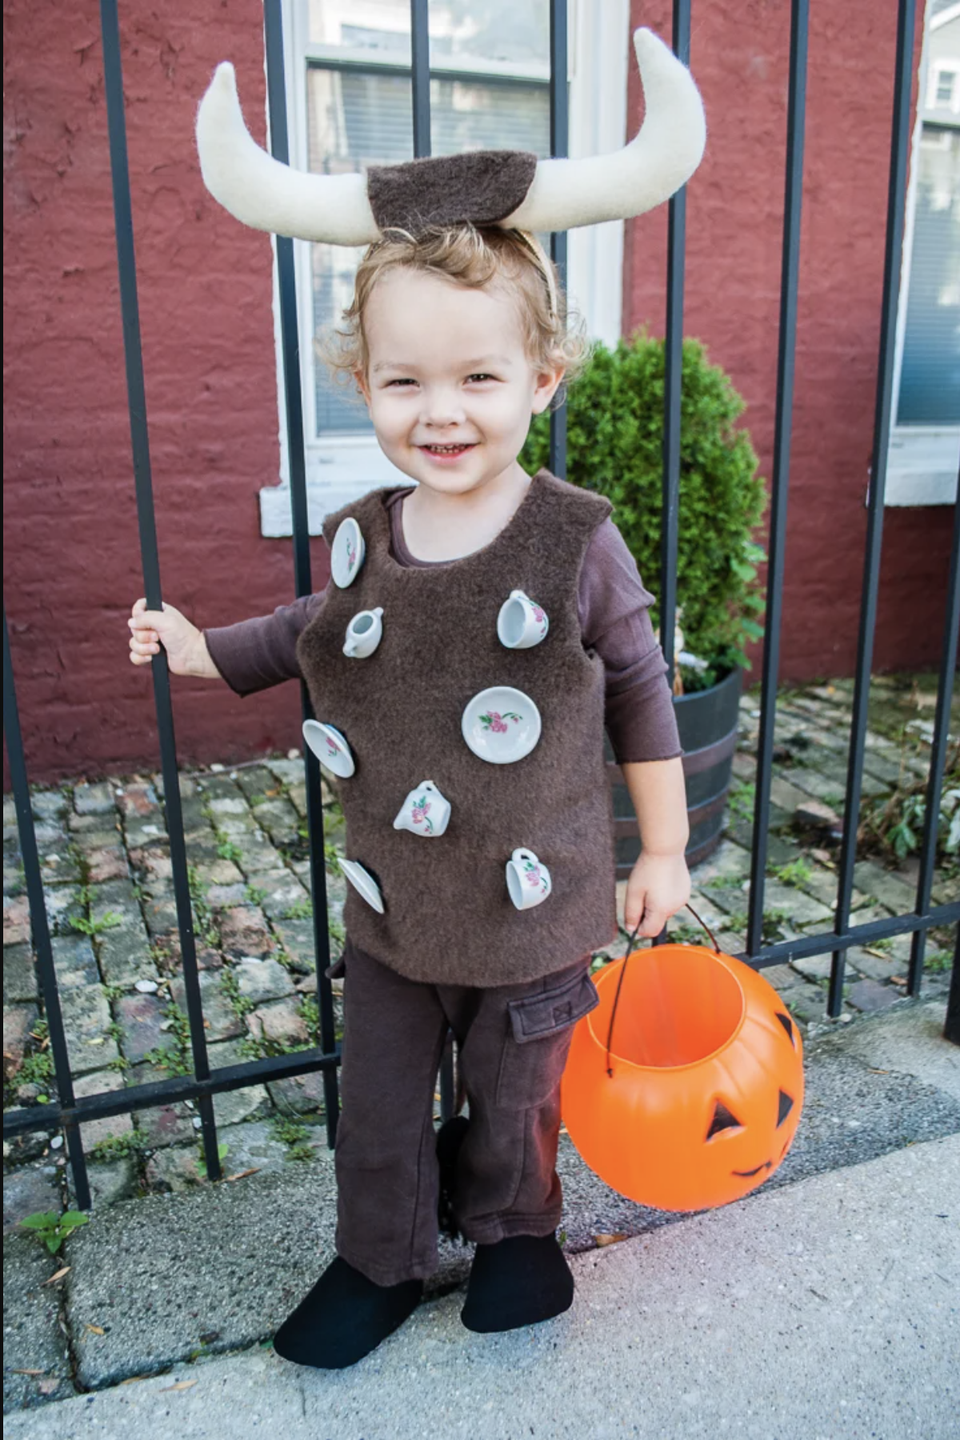 "<p>This might be the cutest costume on our list — and if you have a toddler, you know that it's accurate.</p><p><em><a href=""https://www.merrimentdesign.com/easy-diy-halloween-costume-for-toddlers-bull-in-a-china-shop.php"" rel=""nofollow noopener"" target=""_blank"" data-ylk=""slk:See more at Merriment Design »"" class=""link rapid-noclick-resp"">See more at Merriment Design »</a></em></p><p><strong>RELATED:</strong> <a href=""https://www.goodhousekeeping.com/holidays/halloween-ideas/g21729416/toddler-halloween-costumes/"" rel=""nofollow noopener"" target=""_blank"" data-ylk=""slk:20 Unique Toddler Halloween Costumes That Are Too Stinkin' Cute"" class=""link rapid-noclick-resp"">20 Unique Toddler Halloween Costumes That Are Too Stinkin' Cute</a></p>"